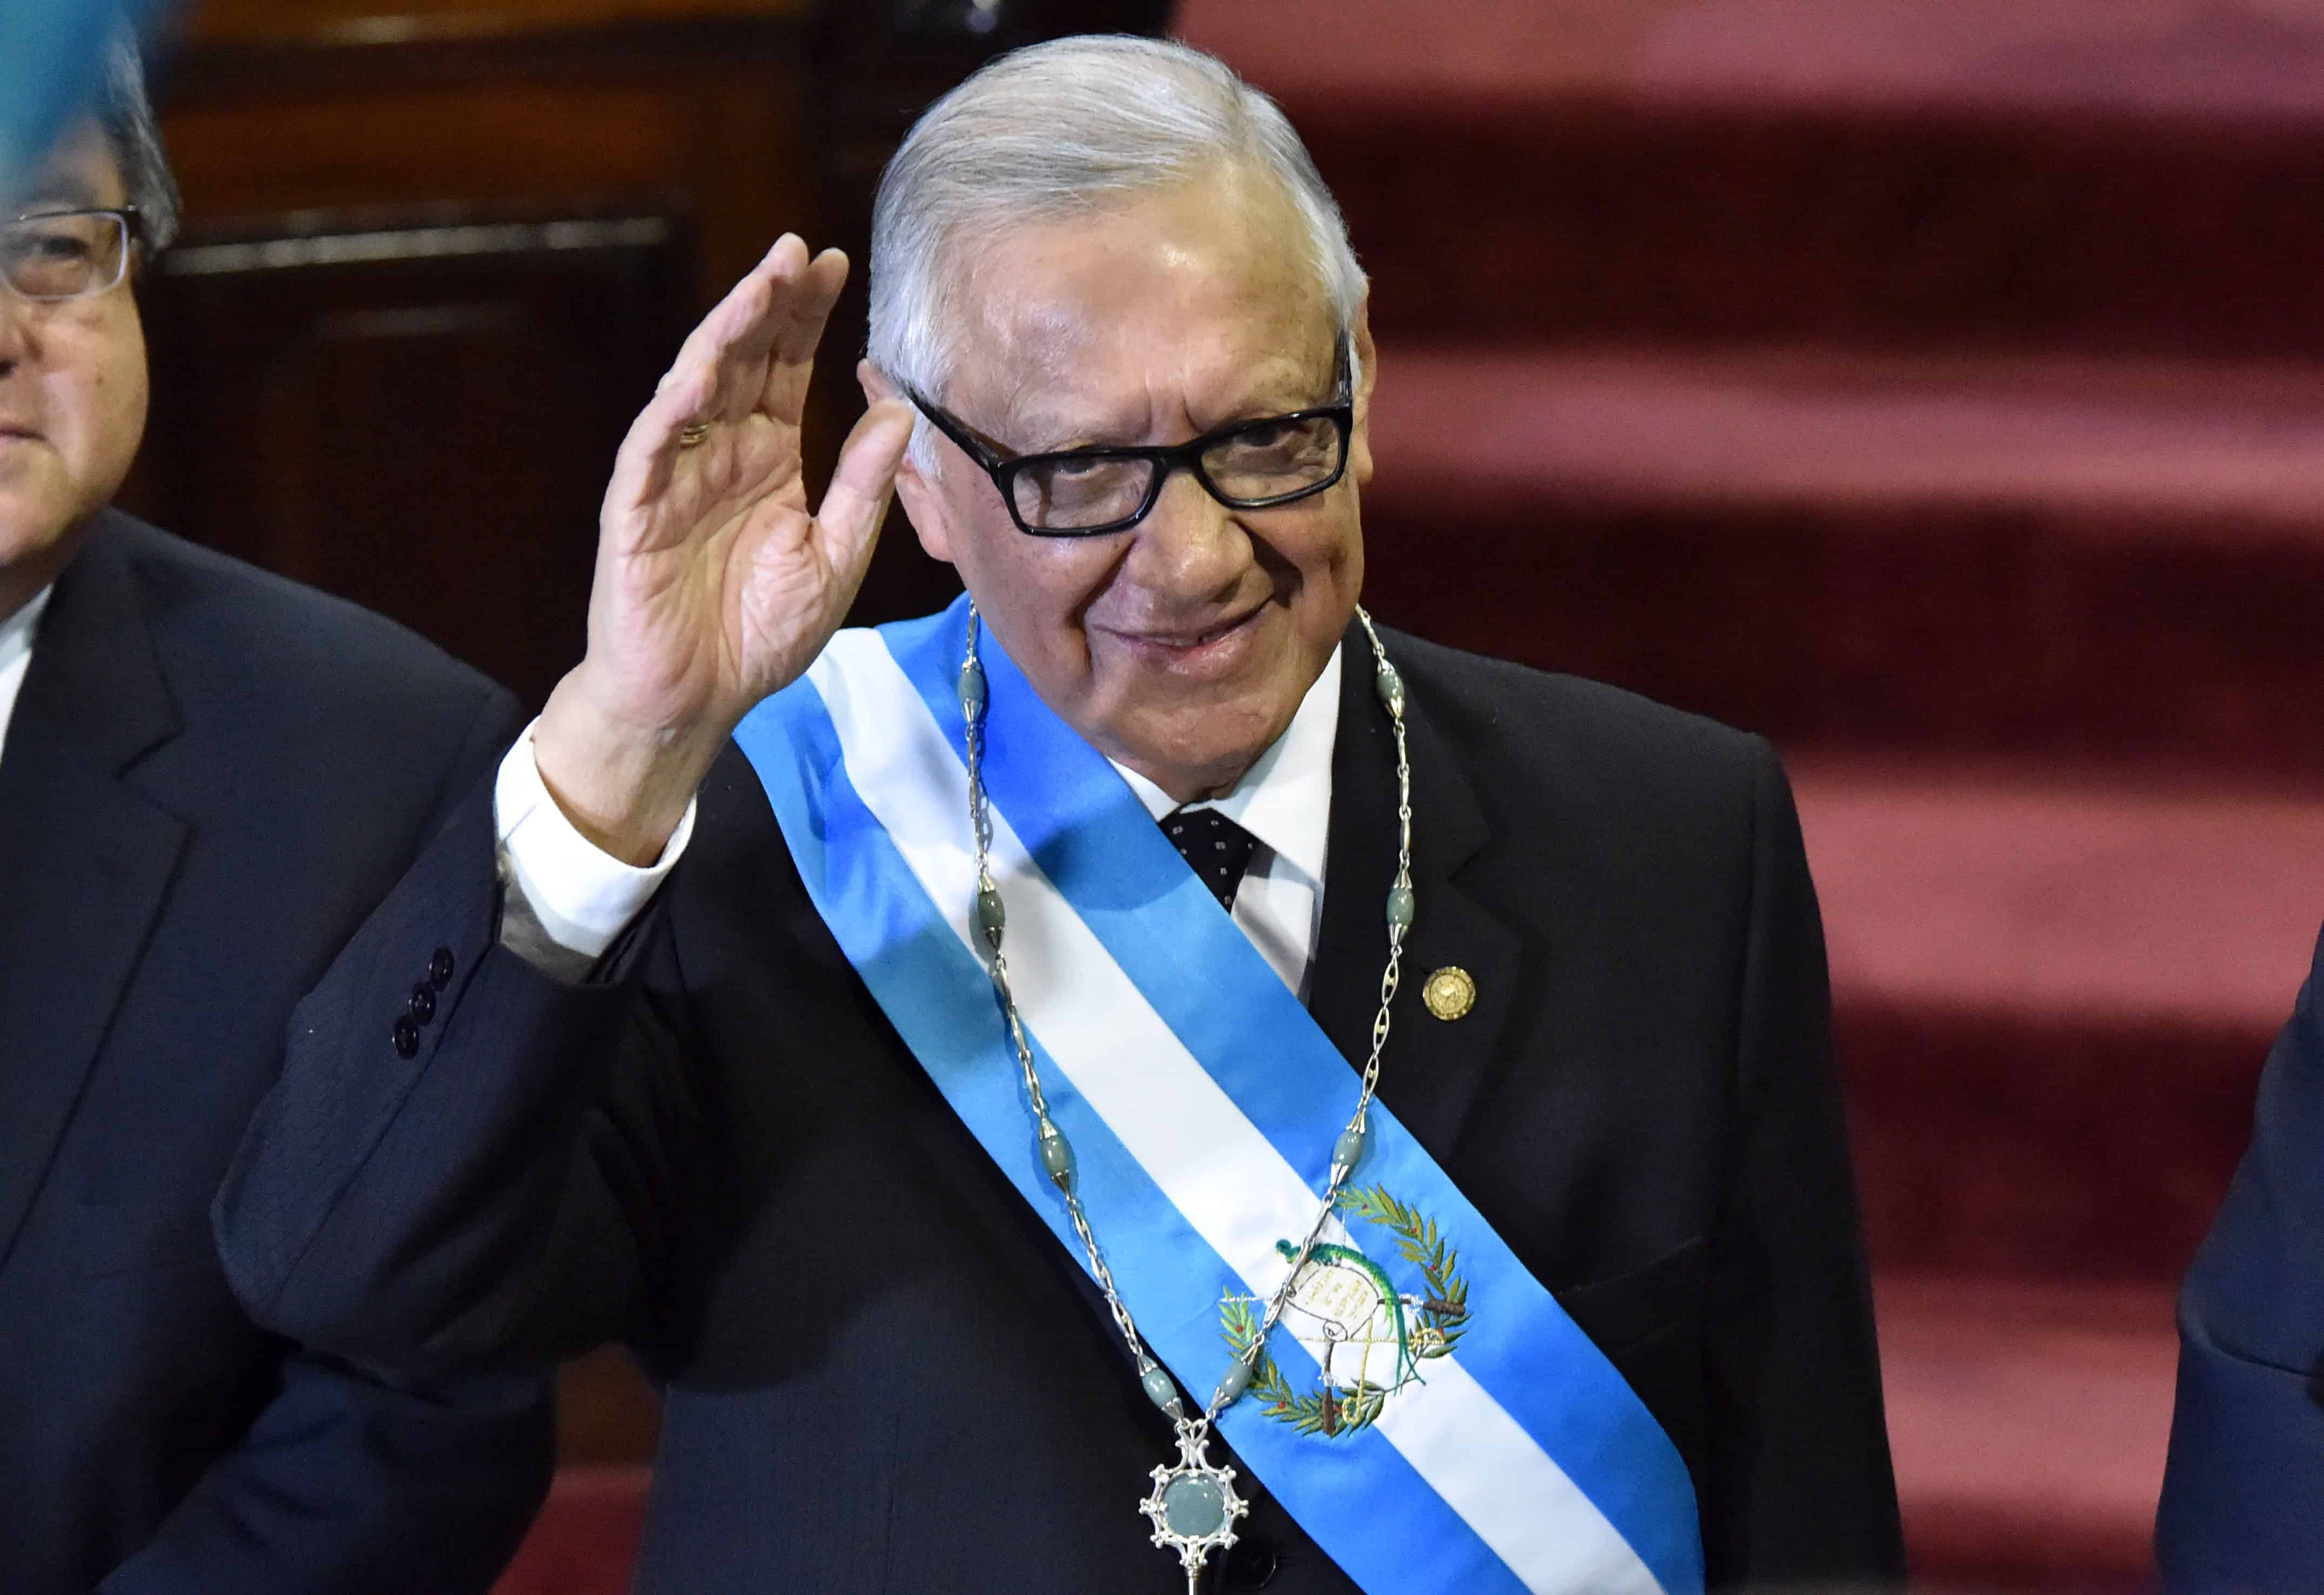 Guatemala's new President Alejandro Maldonado Aguirre waves after being sworn in.